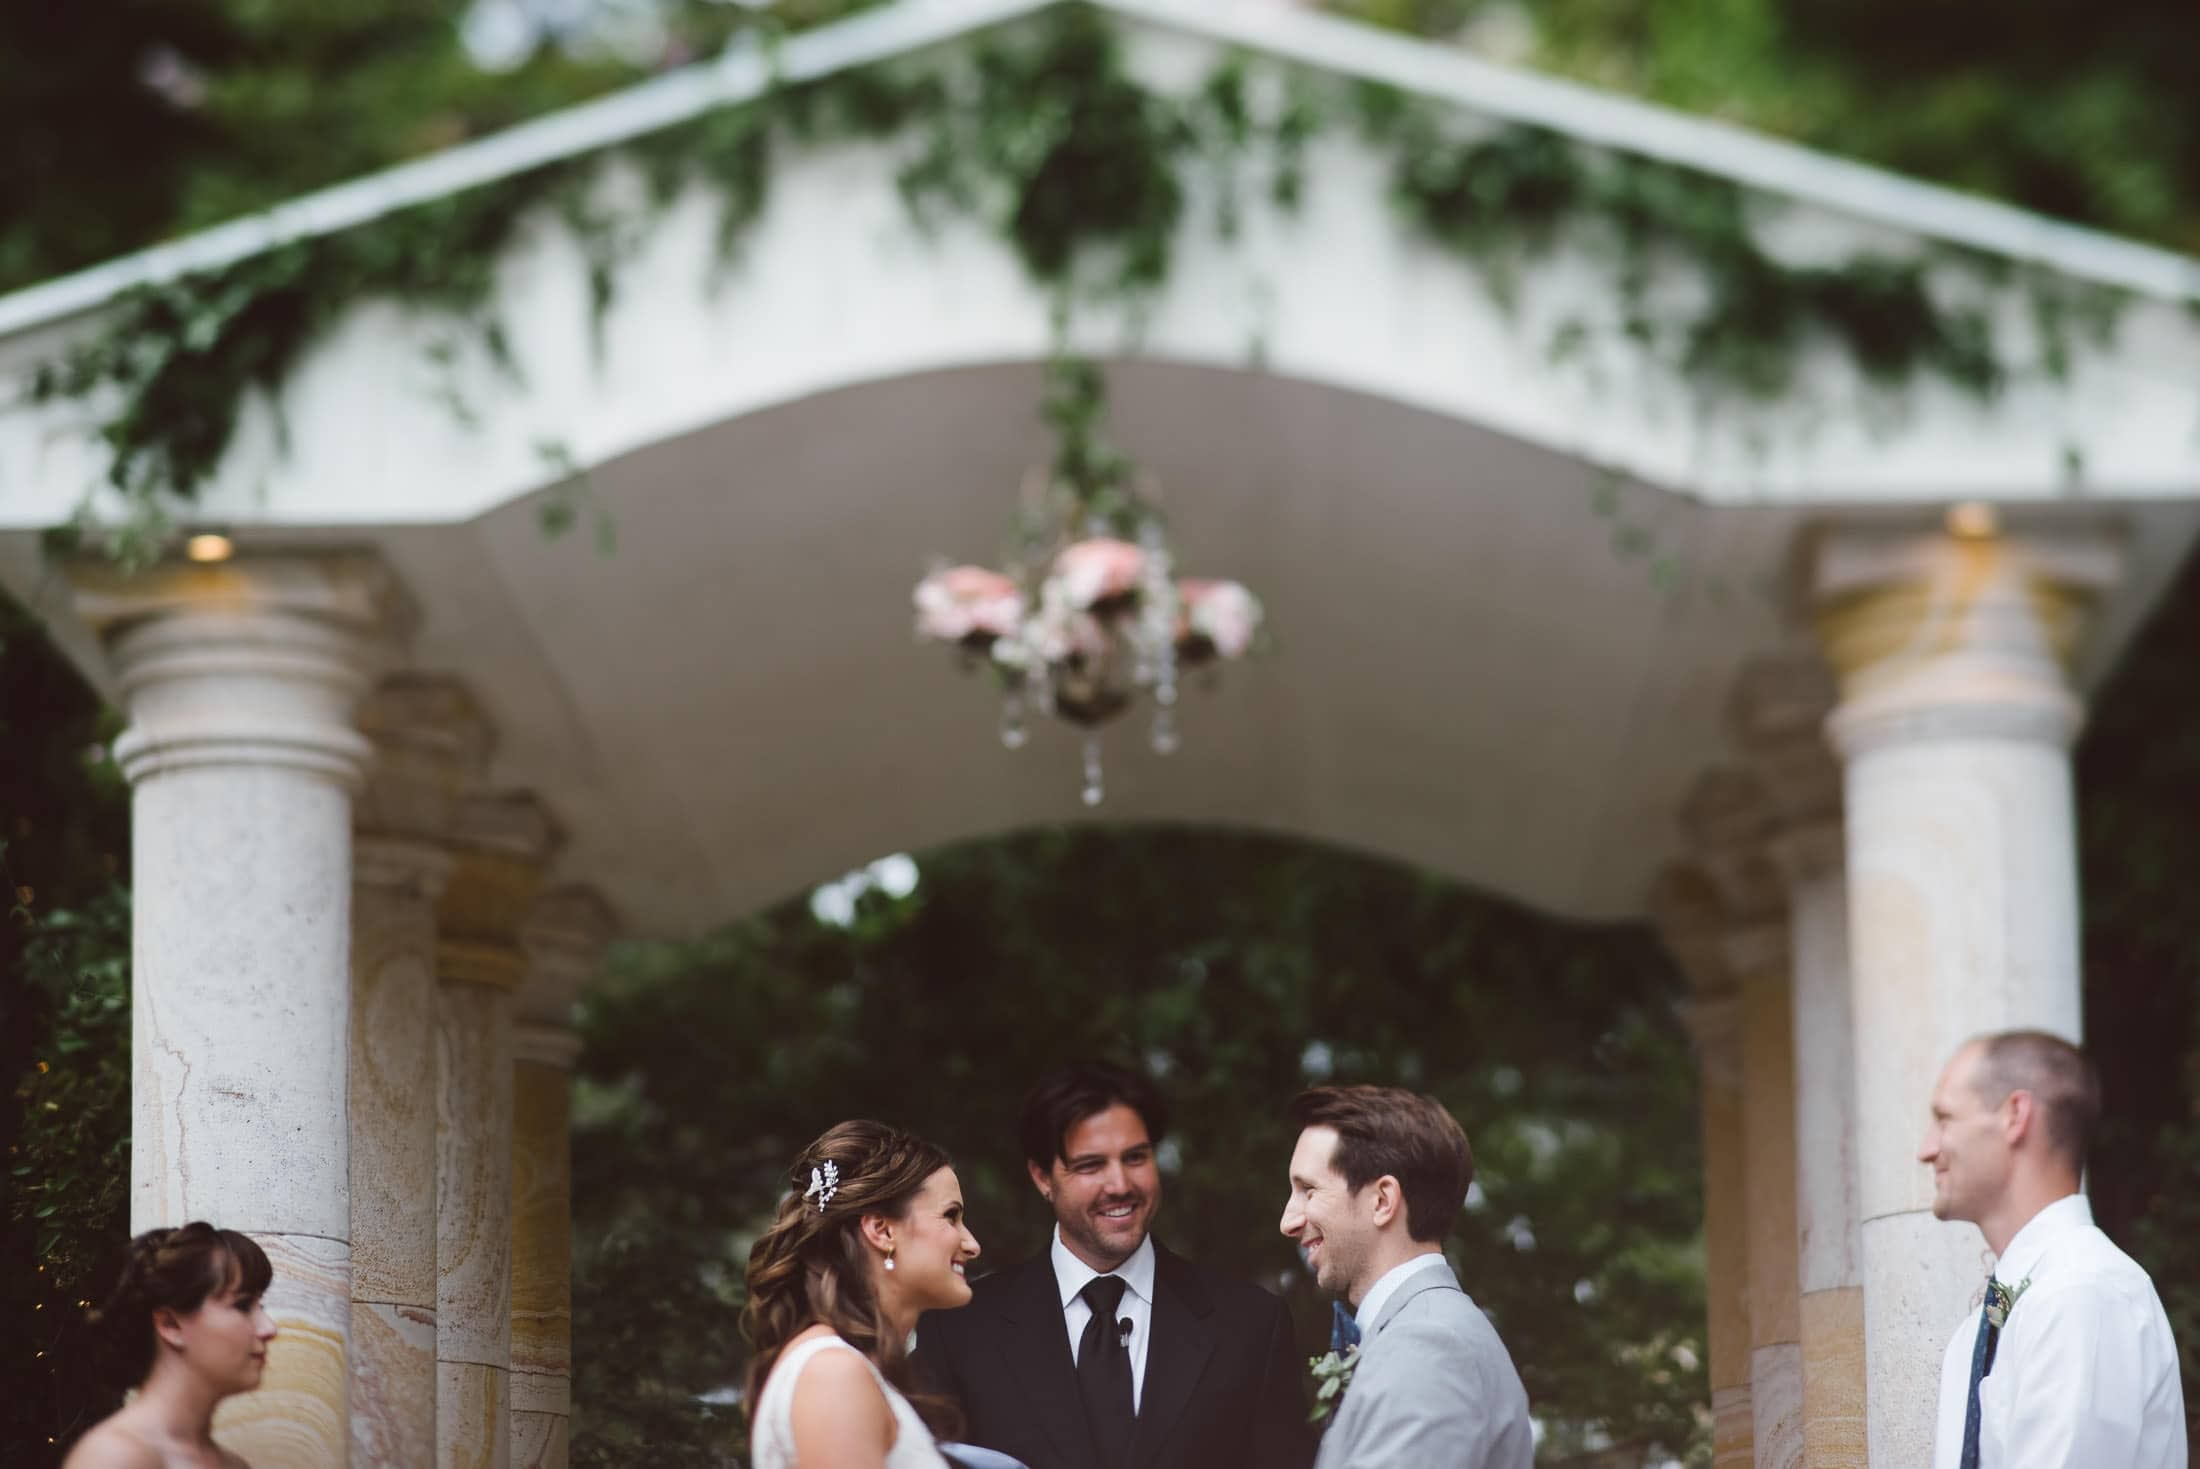 brownstone gardens wedding ceremony